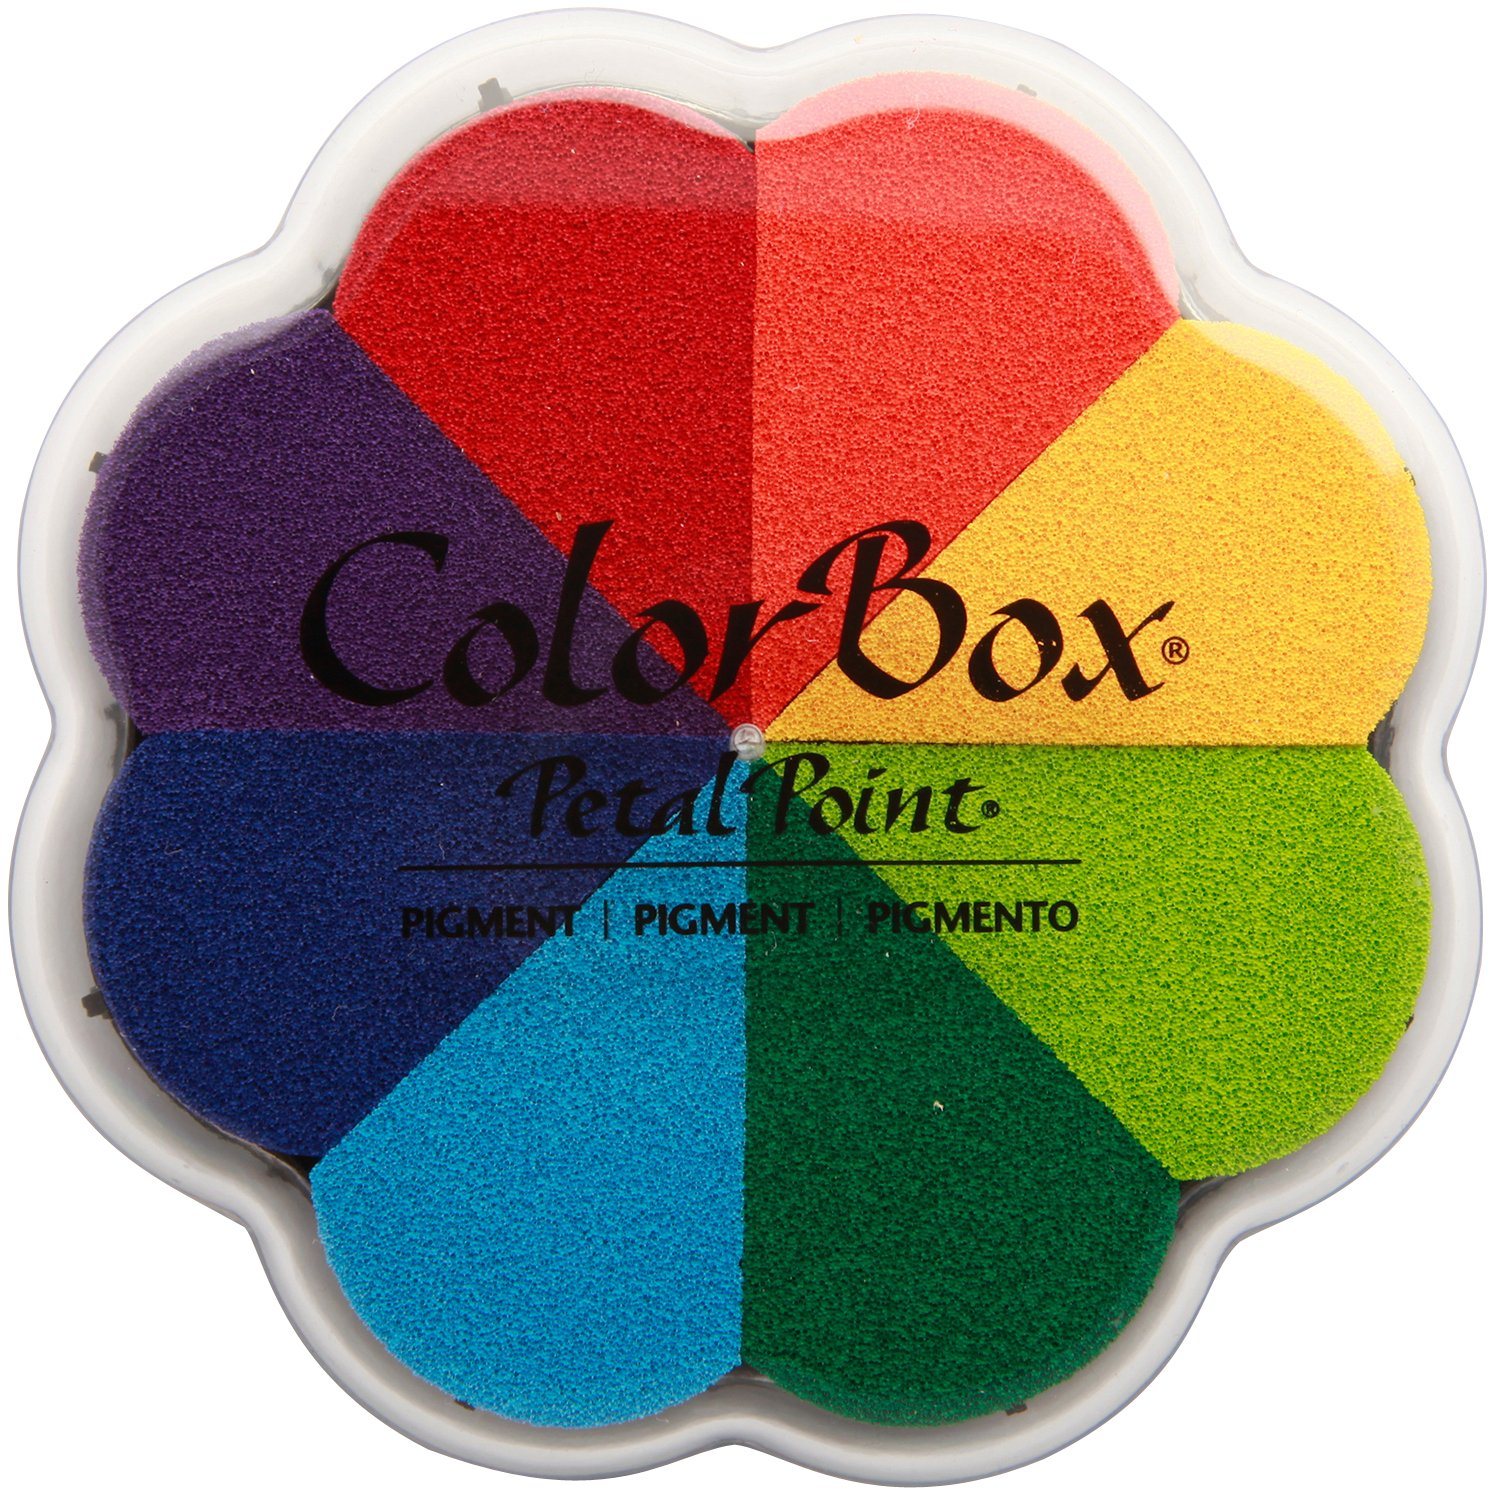 CLEARSNAP ColorBox Pigment Petal Point Option Inkpad 8-Color, Pinwheel (080000-08001)